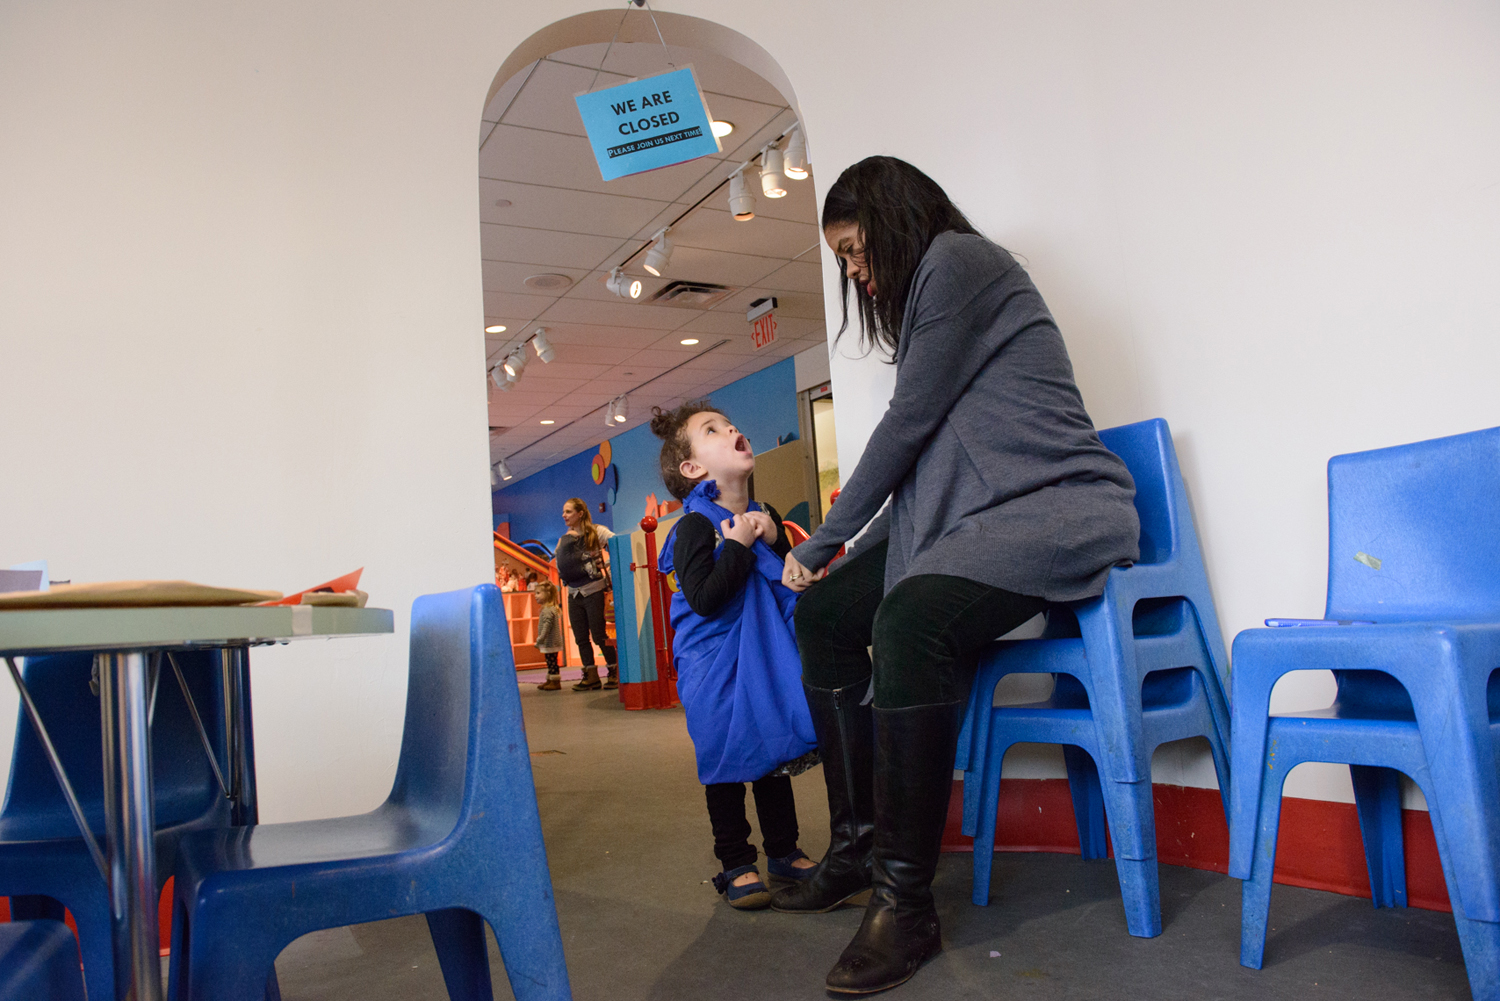 """Seven months pregnant, Vice President of Programs and Education at Brooklyn Children's Museum Petrushka Bazin Larsen fixes her daughter, Ila Bazin Larsen's """"Elsa dress"""" while working on a stressful day when child care had fallen through."""